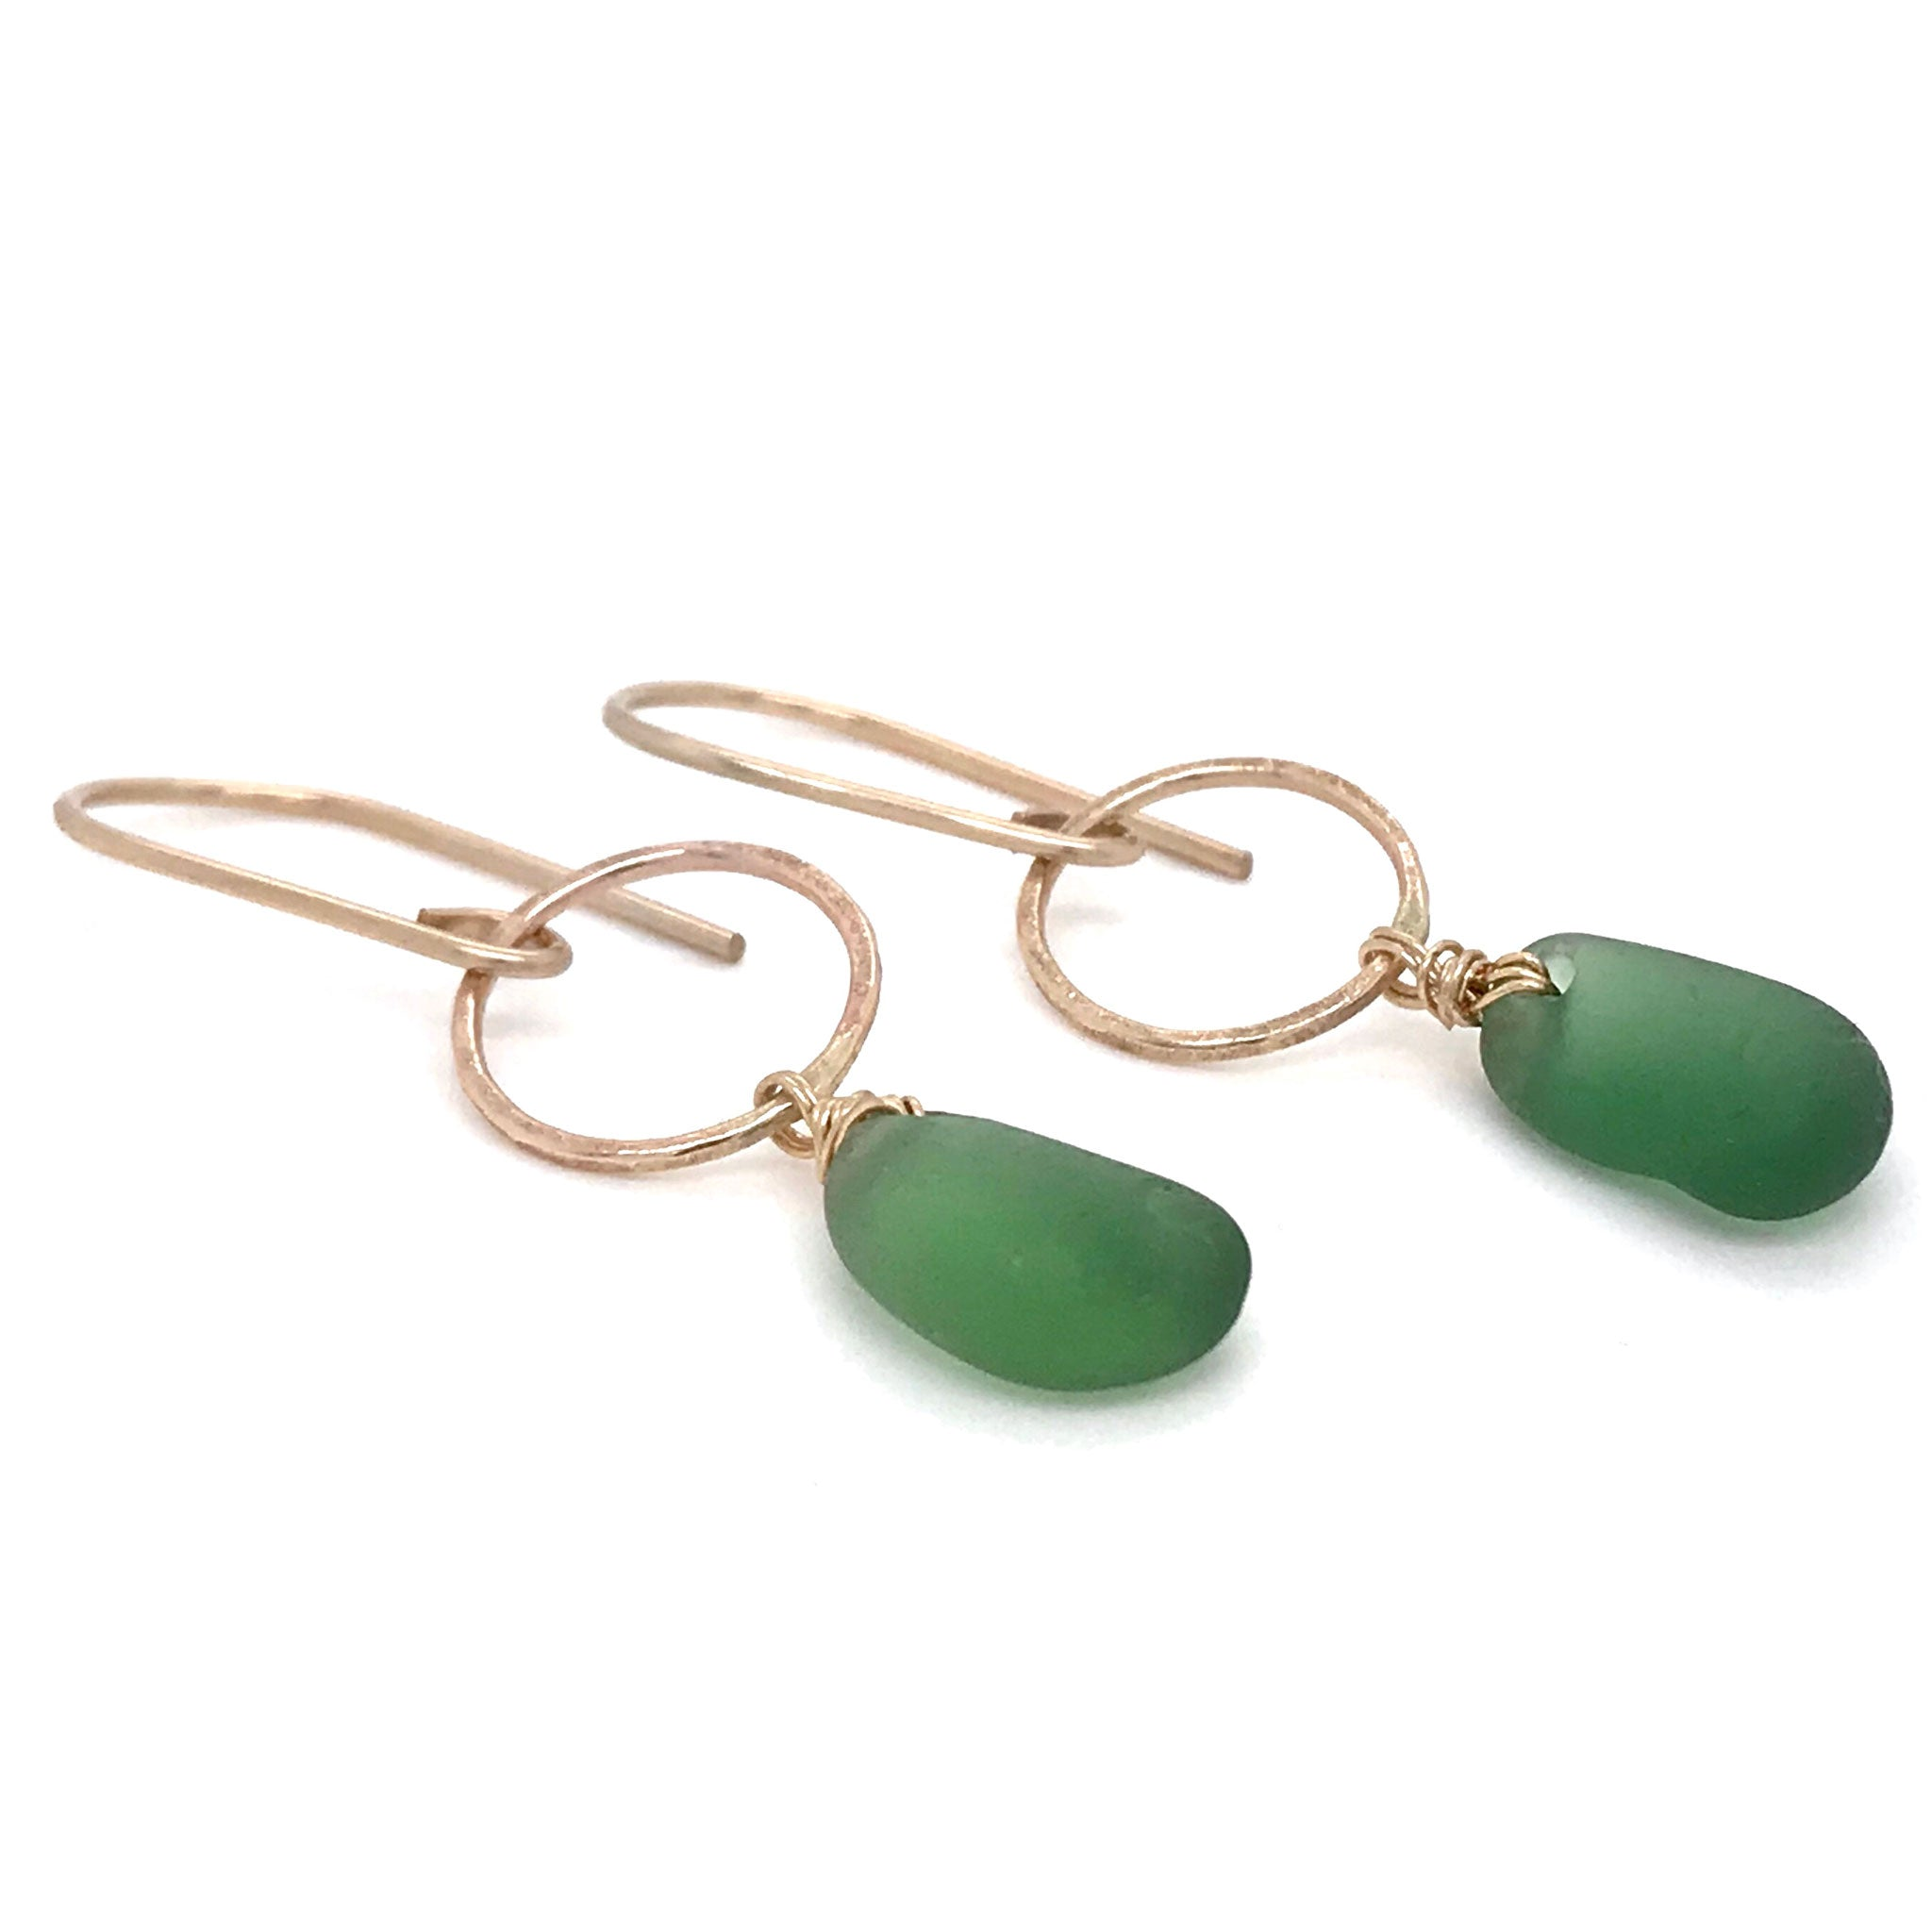 green seaglass on gold circle drop earrings kriket broadhurst jewellery